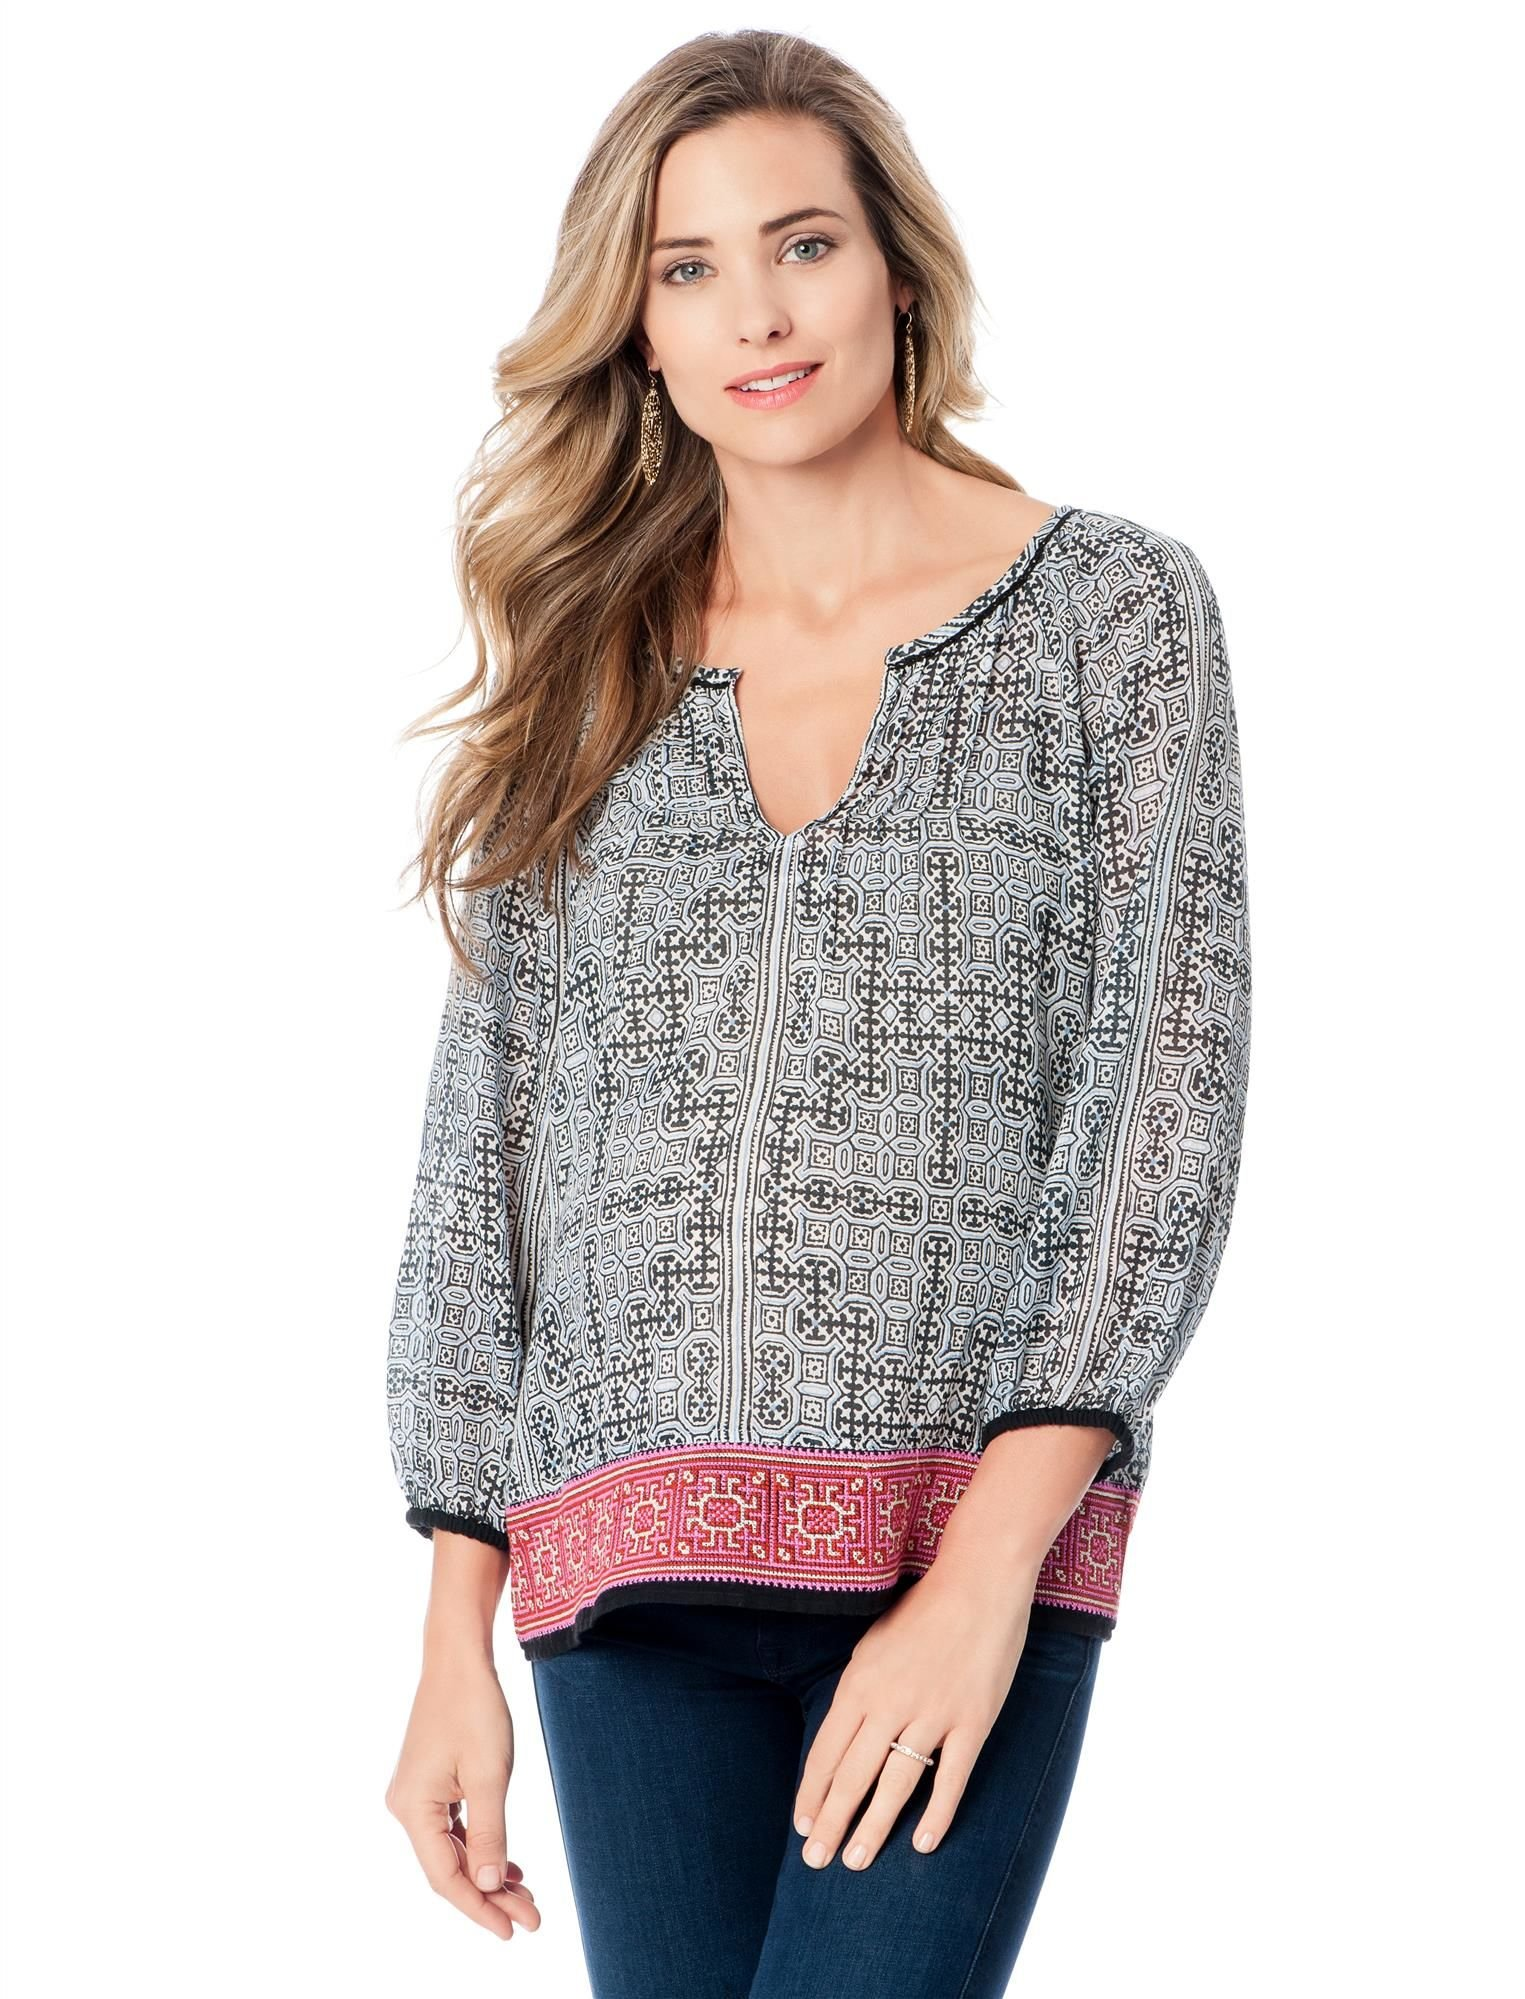 Joie Embroidery Maternity Top